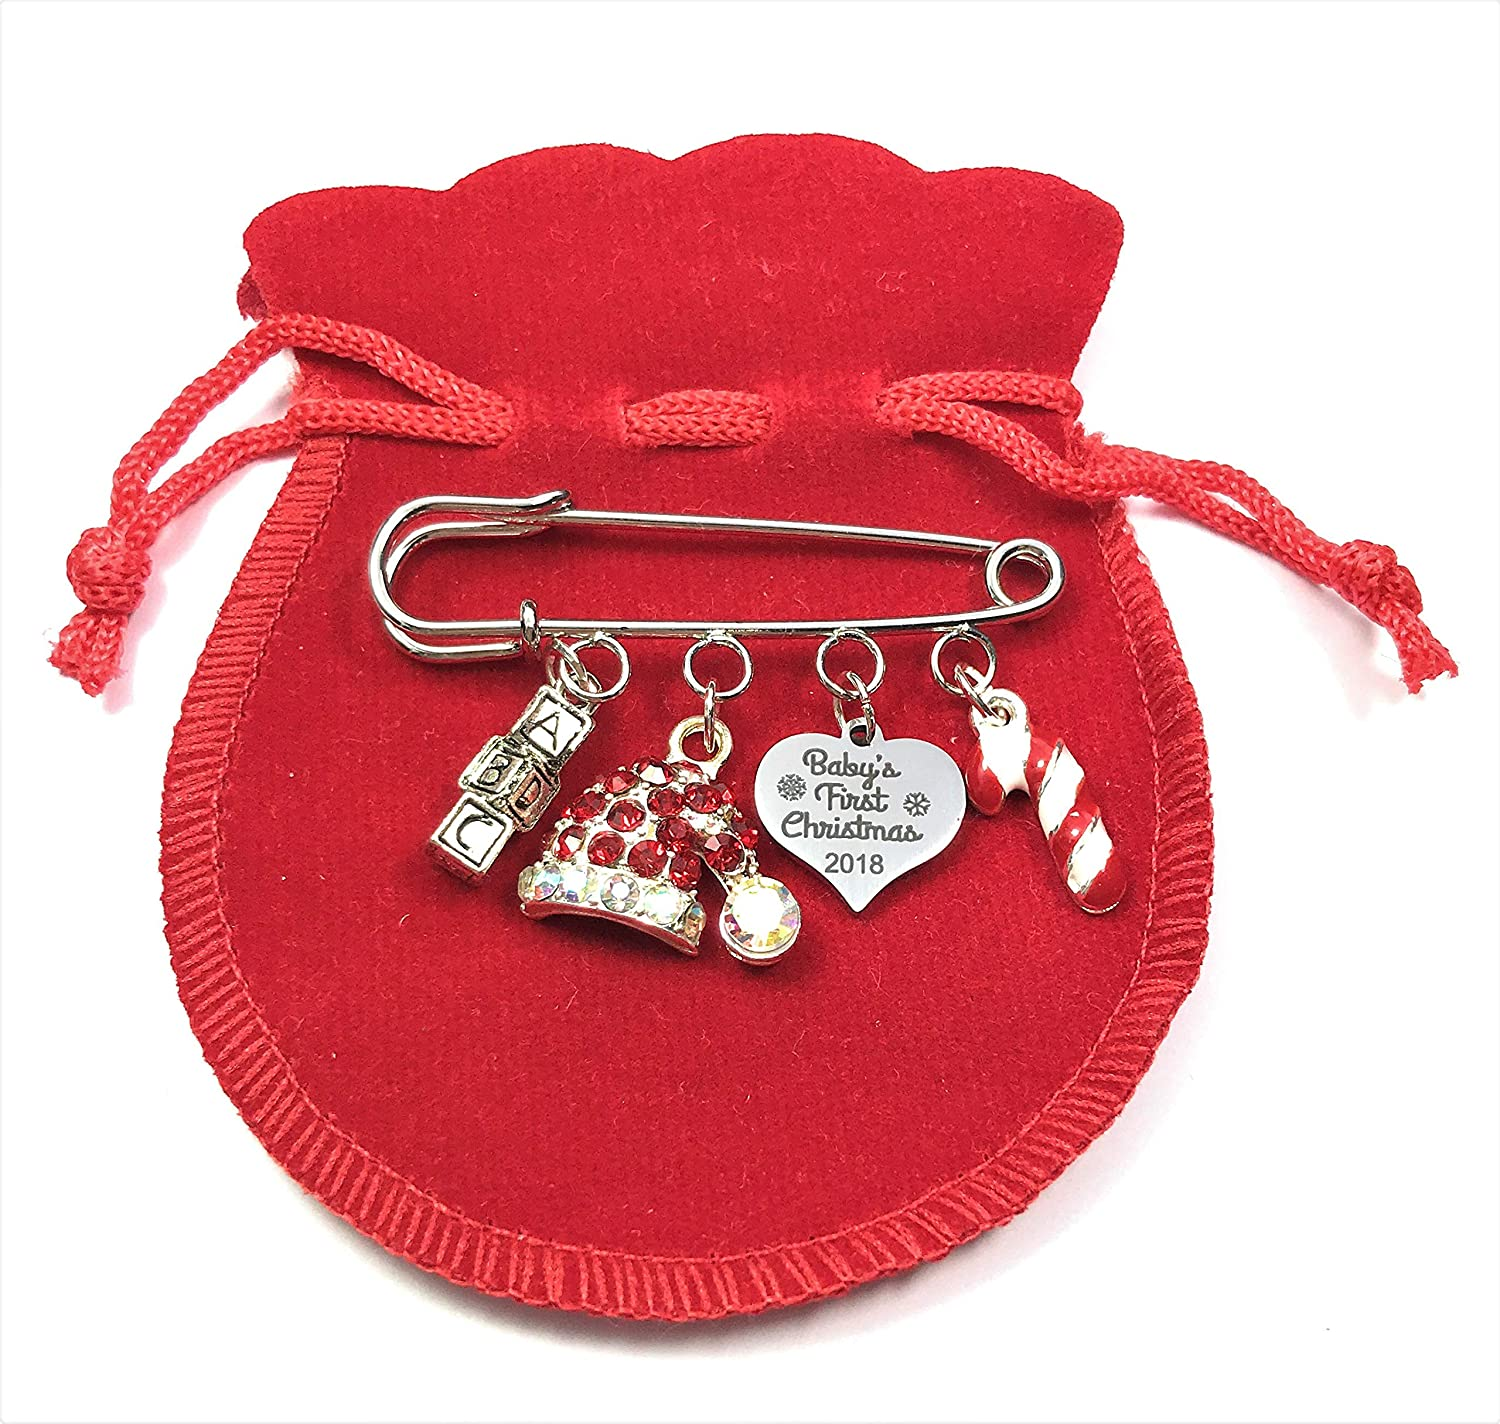 Baby's First Christmas 2018 Nappy Safety Pin Keepsake Charms with Christmas Hat Charm, Candy Cane Charm and Letter Blocks Charm Comes with Red Velvet Gift Bag and Gift Card by Libby's Market Place Libby' s Market Place